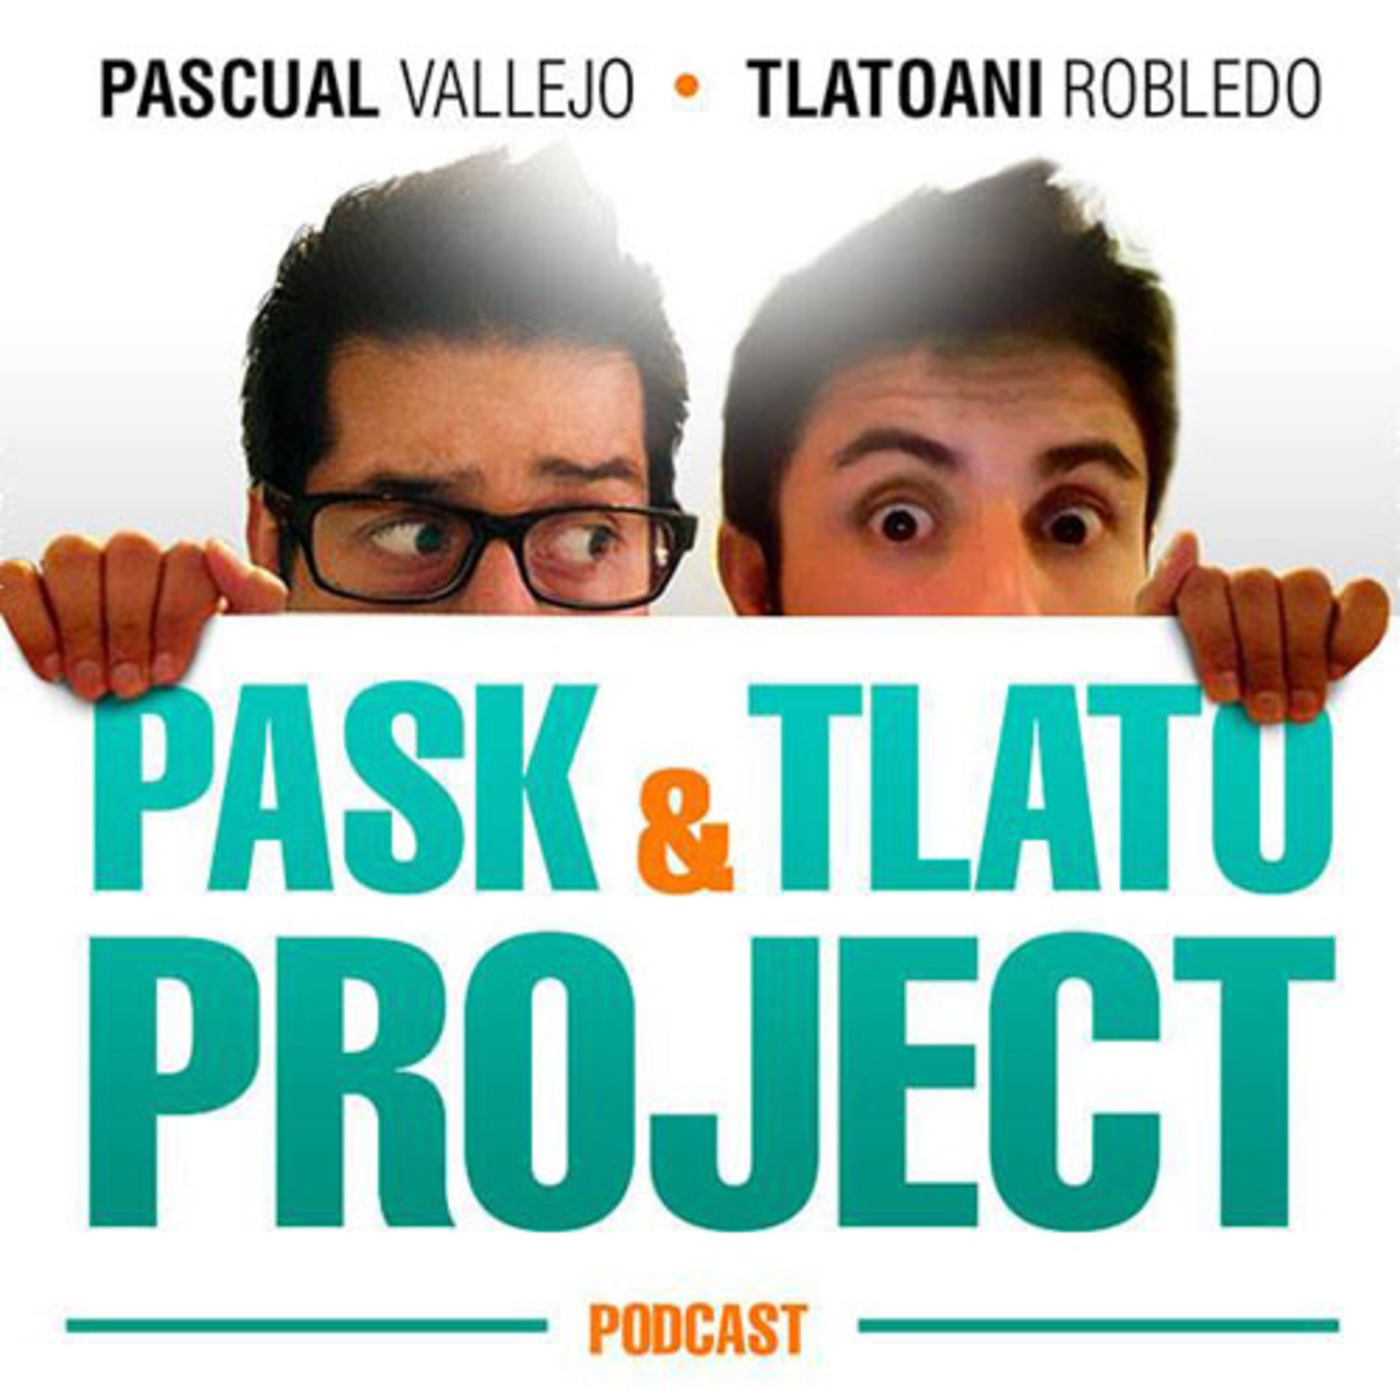 Pask & Tlato Project Podcast